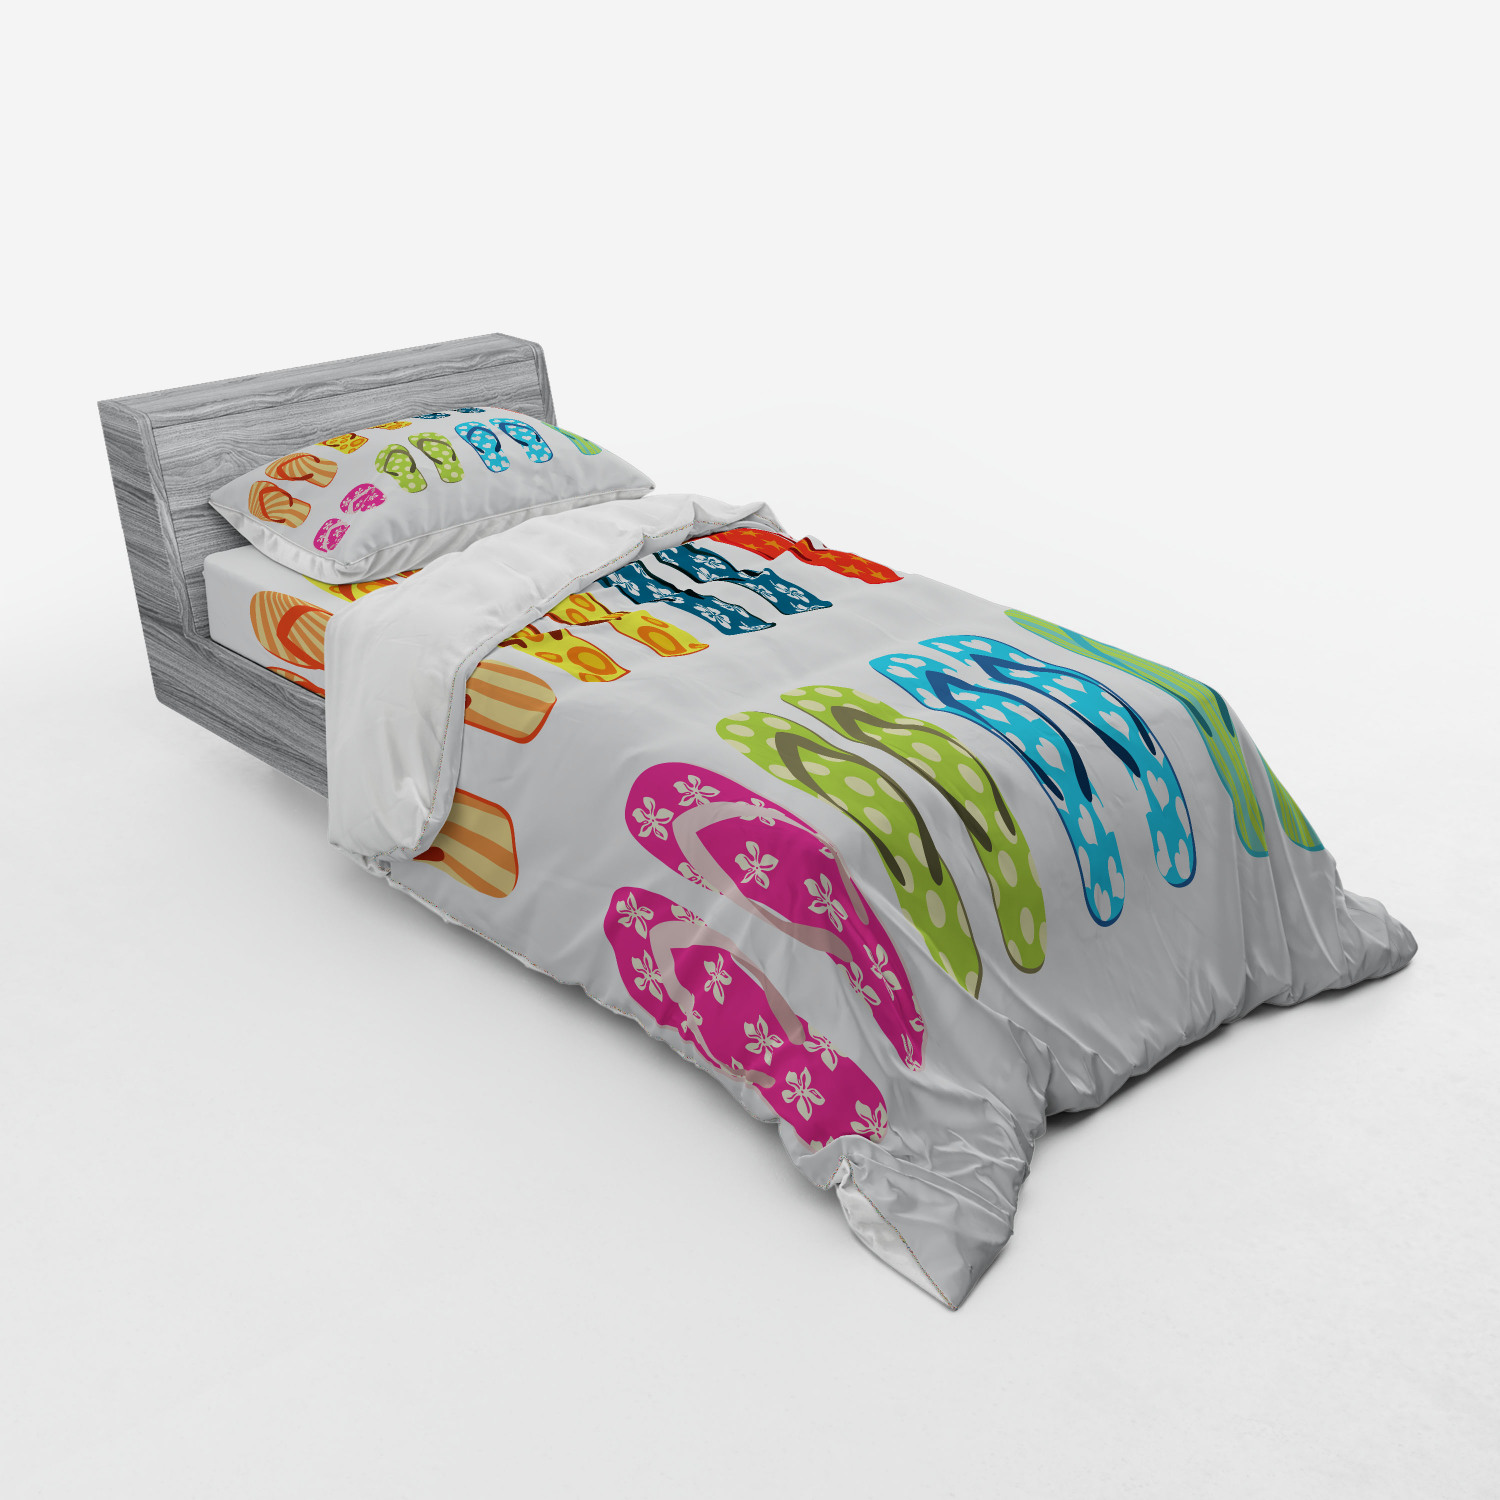 thumbnail 109 - Ambesonne Summer Bedding Set Duvet Cover Sham Fitted Sheet in 3 Sizes